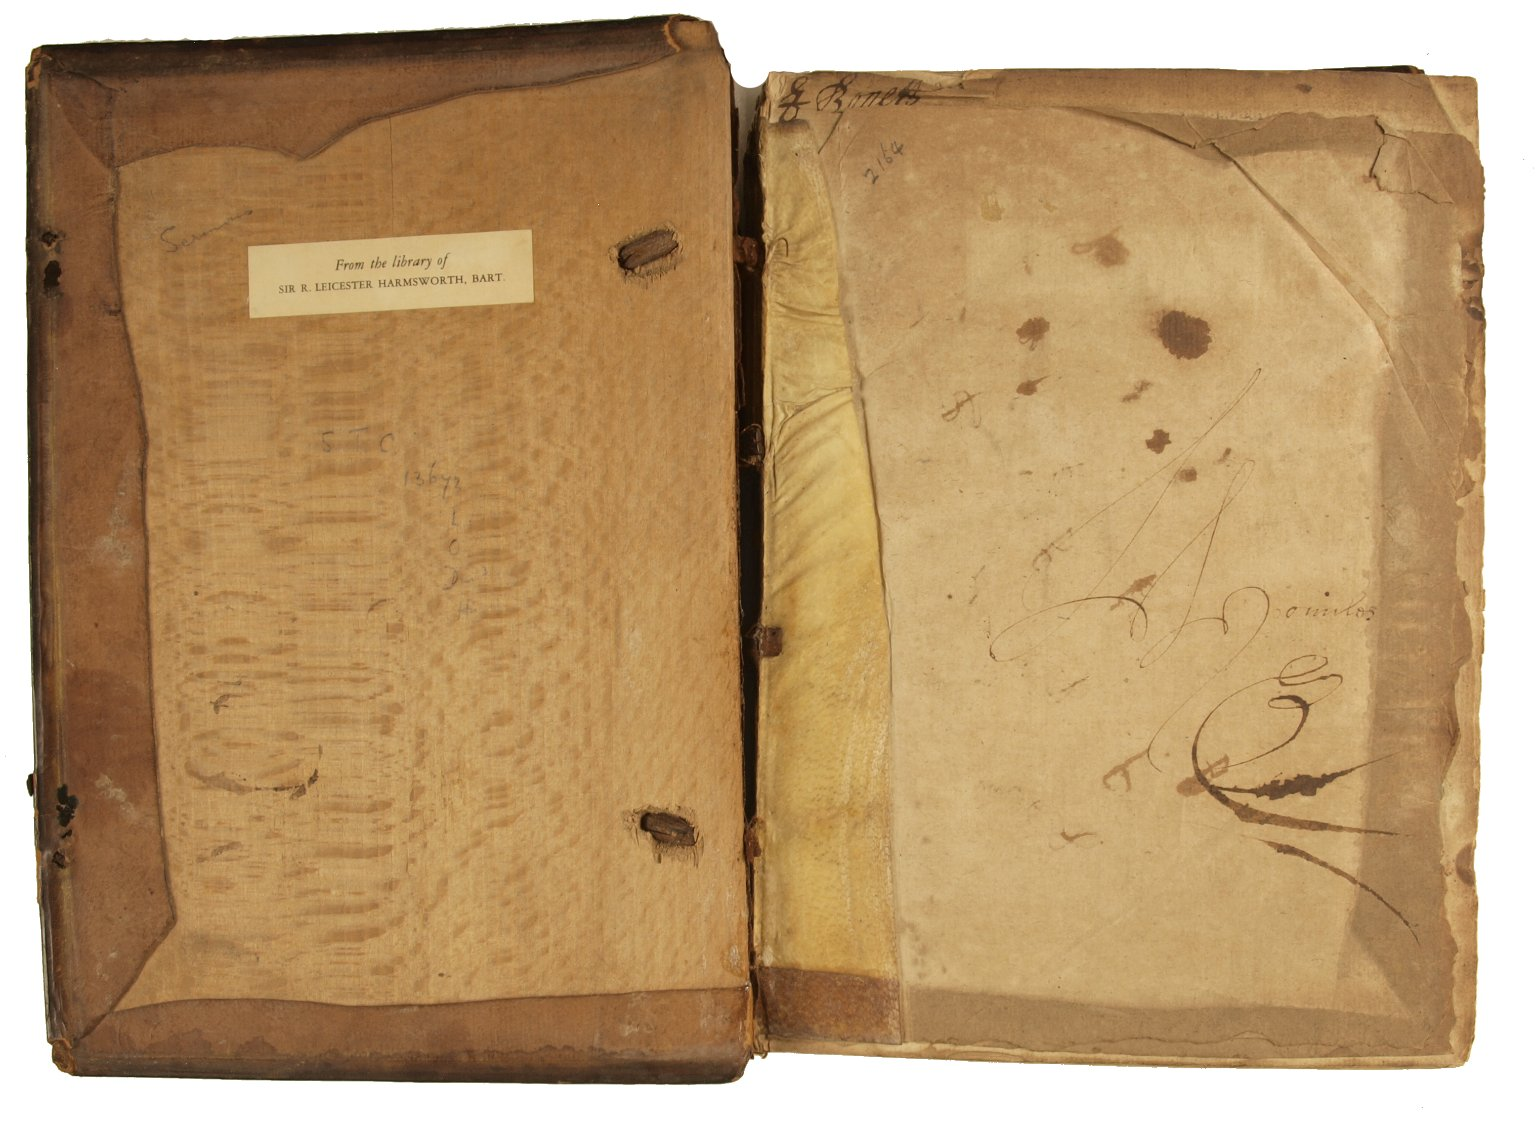 Inside front cover, STC 13656.